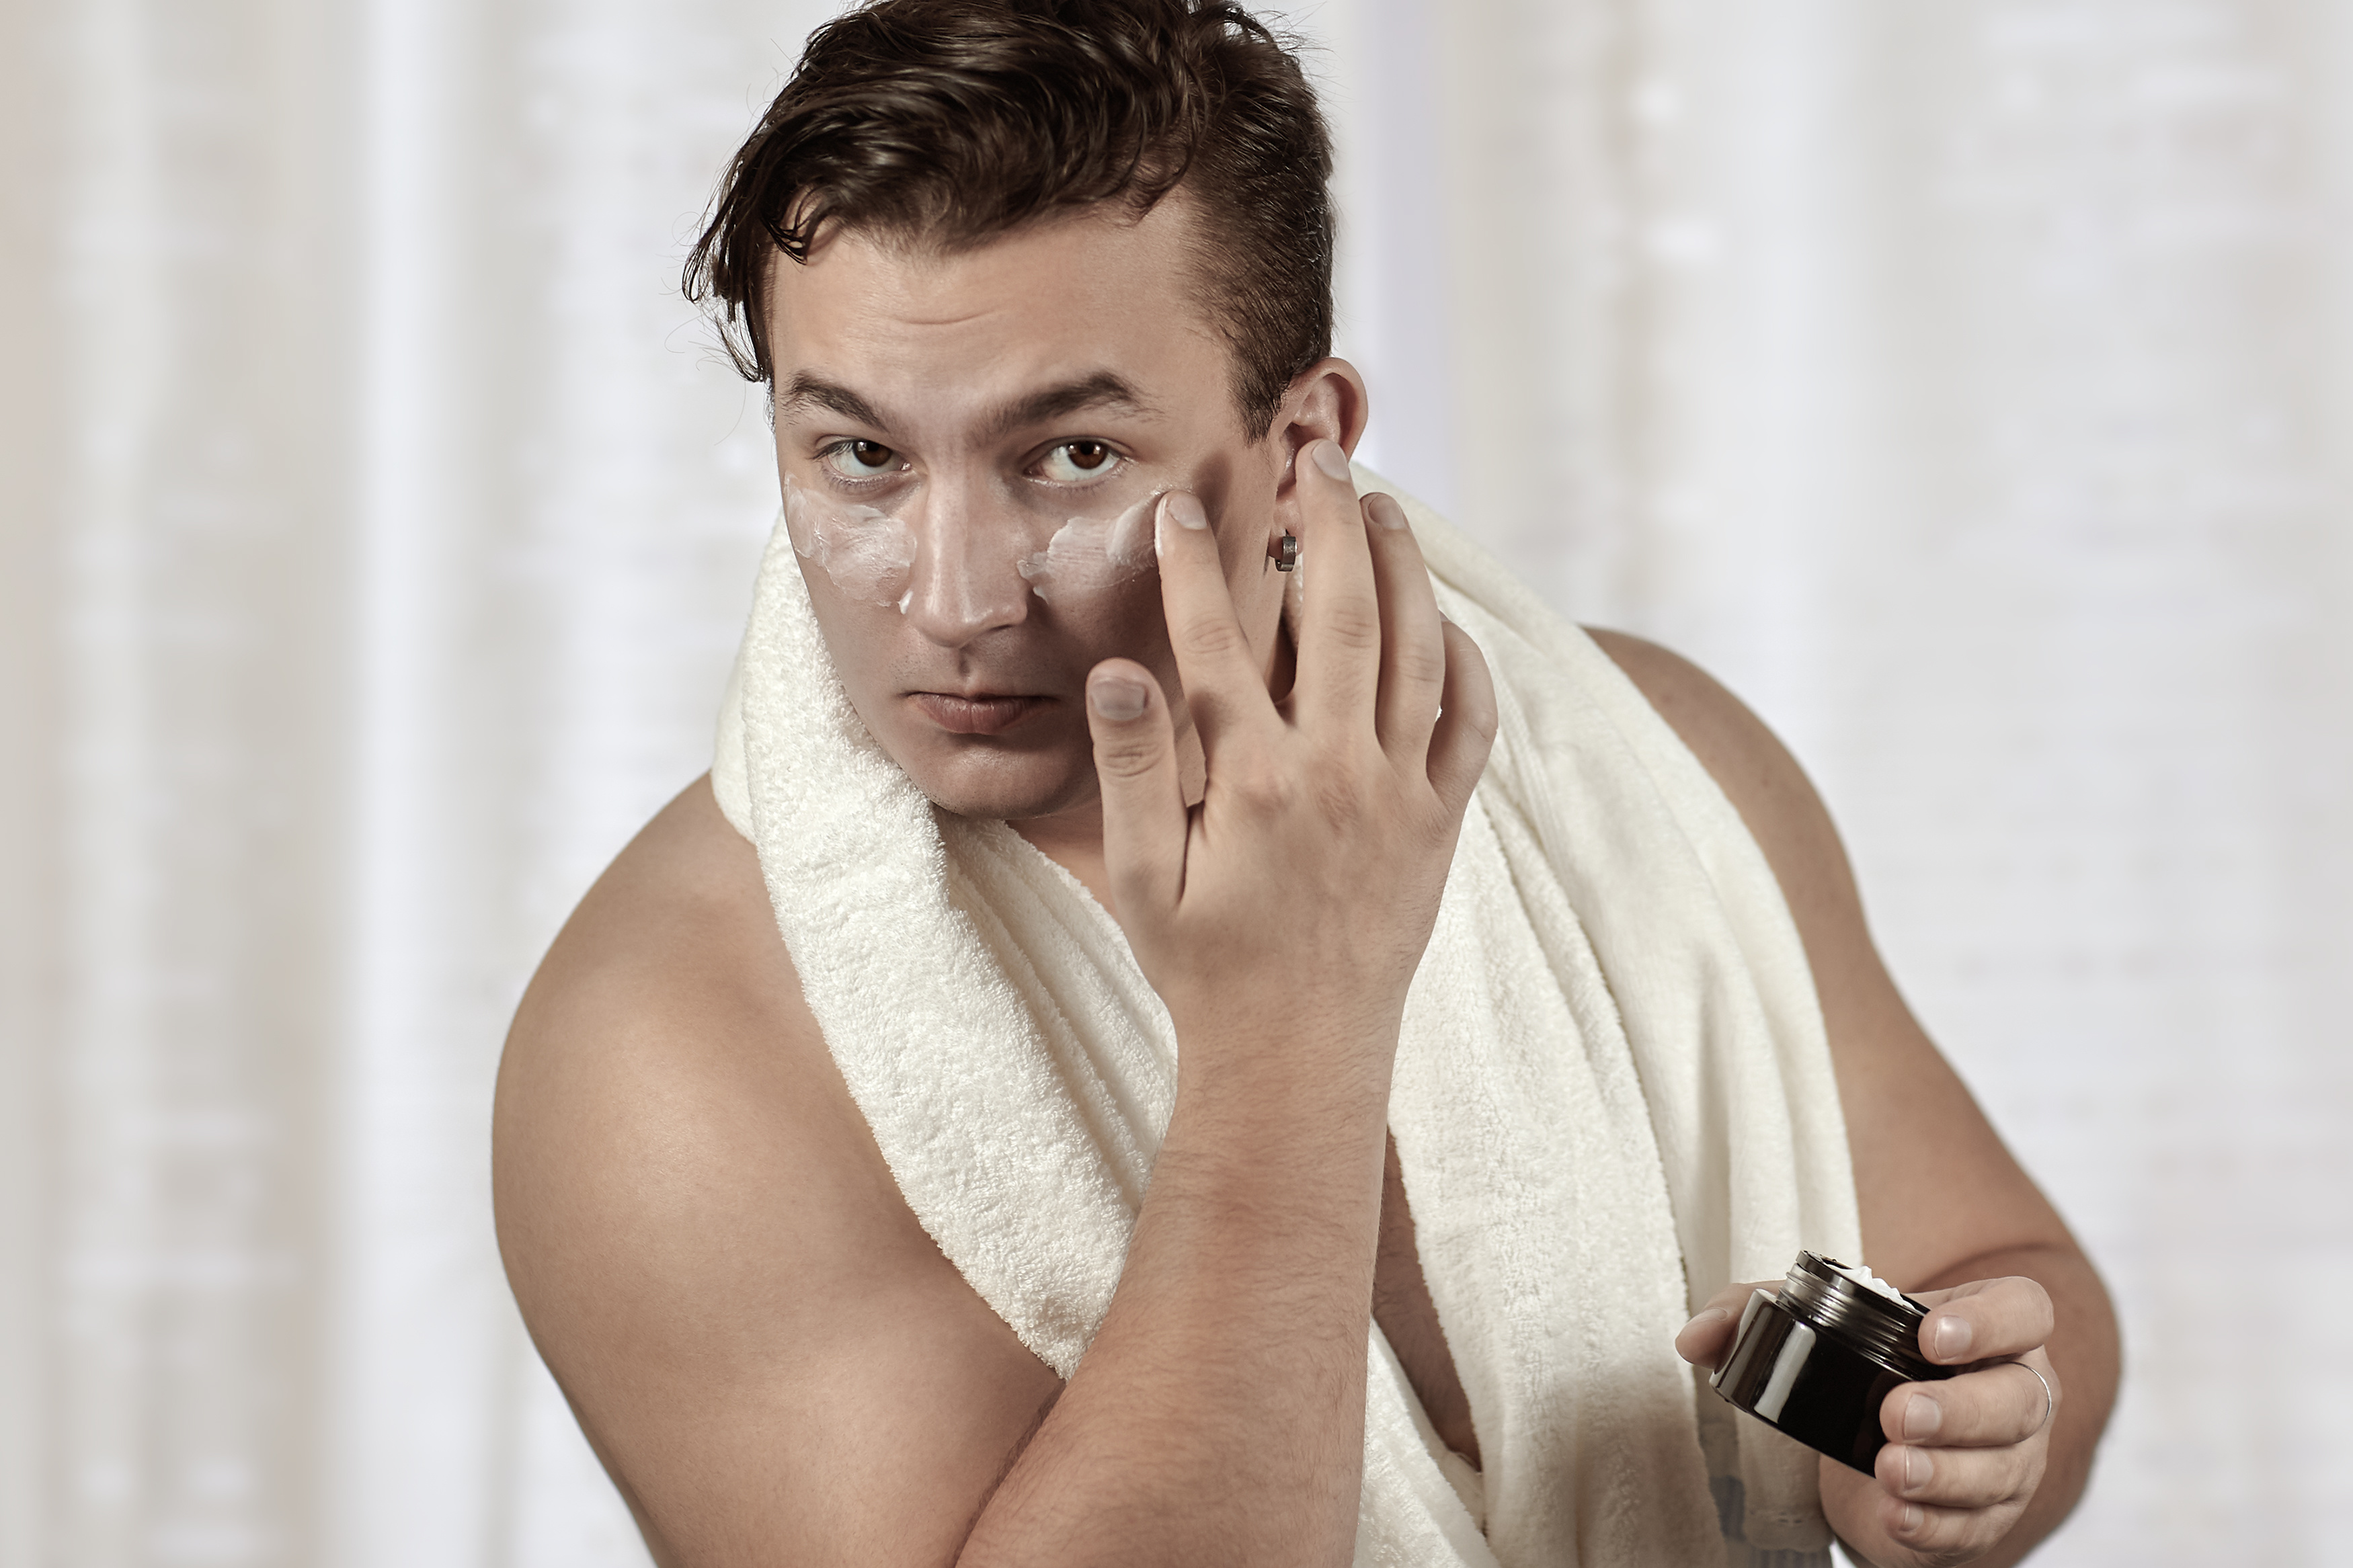 Young handsome caucasian man applying cream under the eyes. Caring face, metrosexual daily routine in the bathroom. Indoors, copy space.